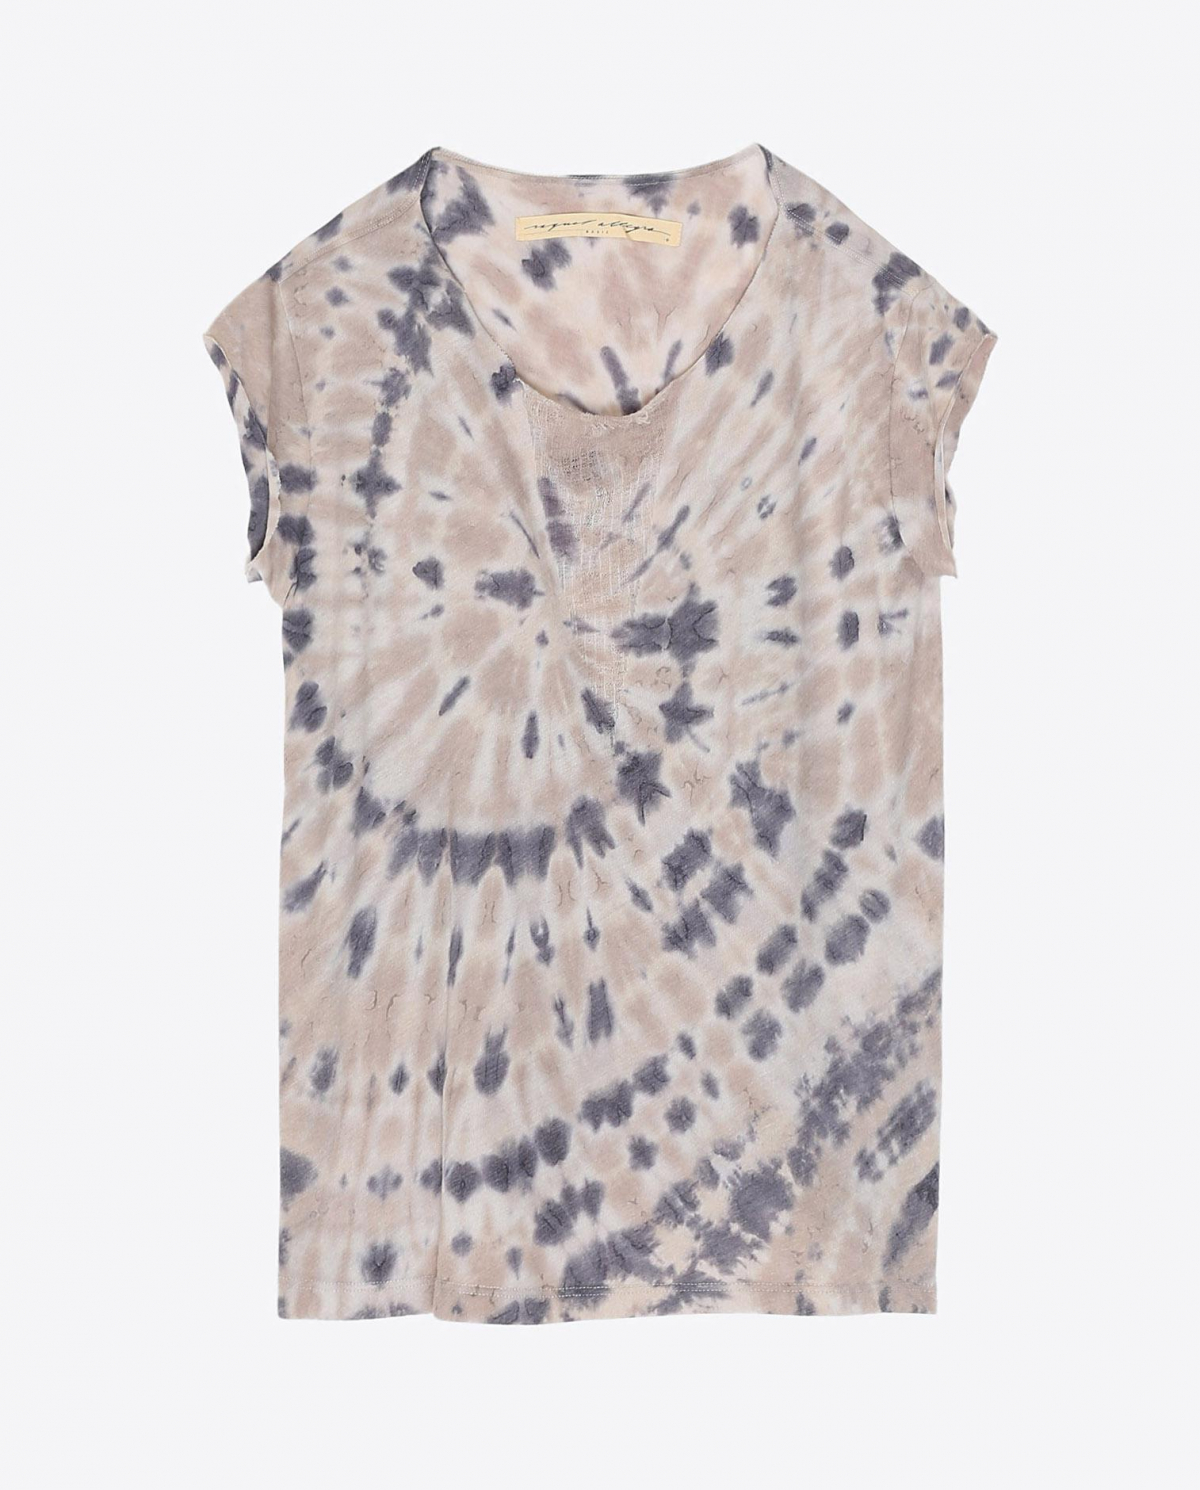 Raquel Allegra Pré-Collection Shred Front Muscle Tee Tie & Dye - Sand Dollar